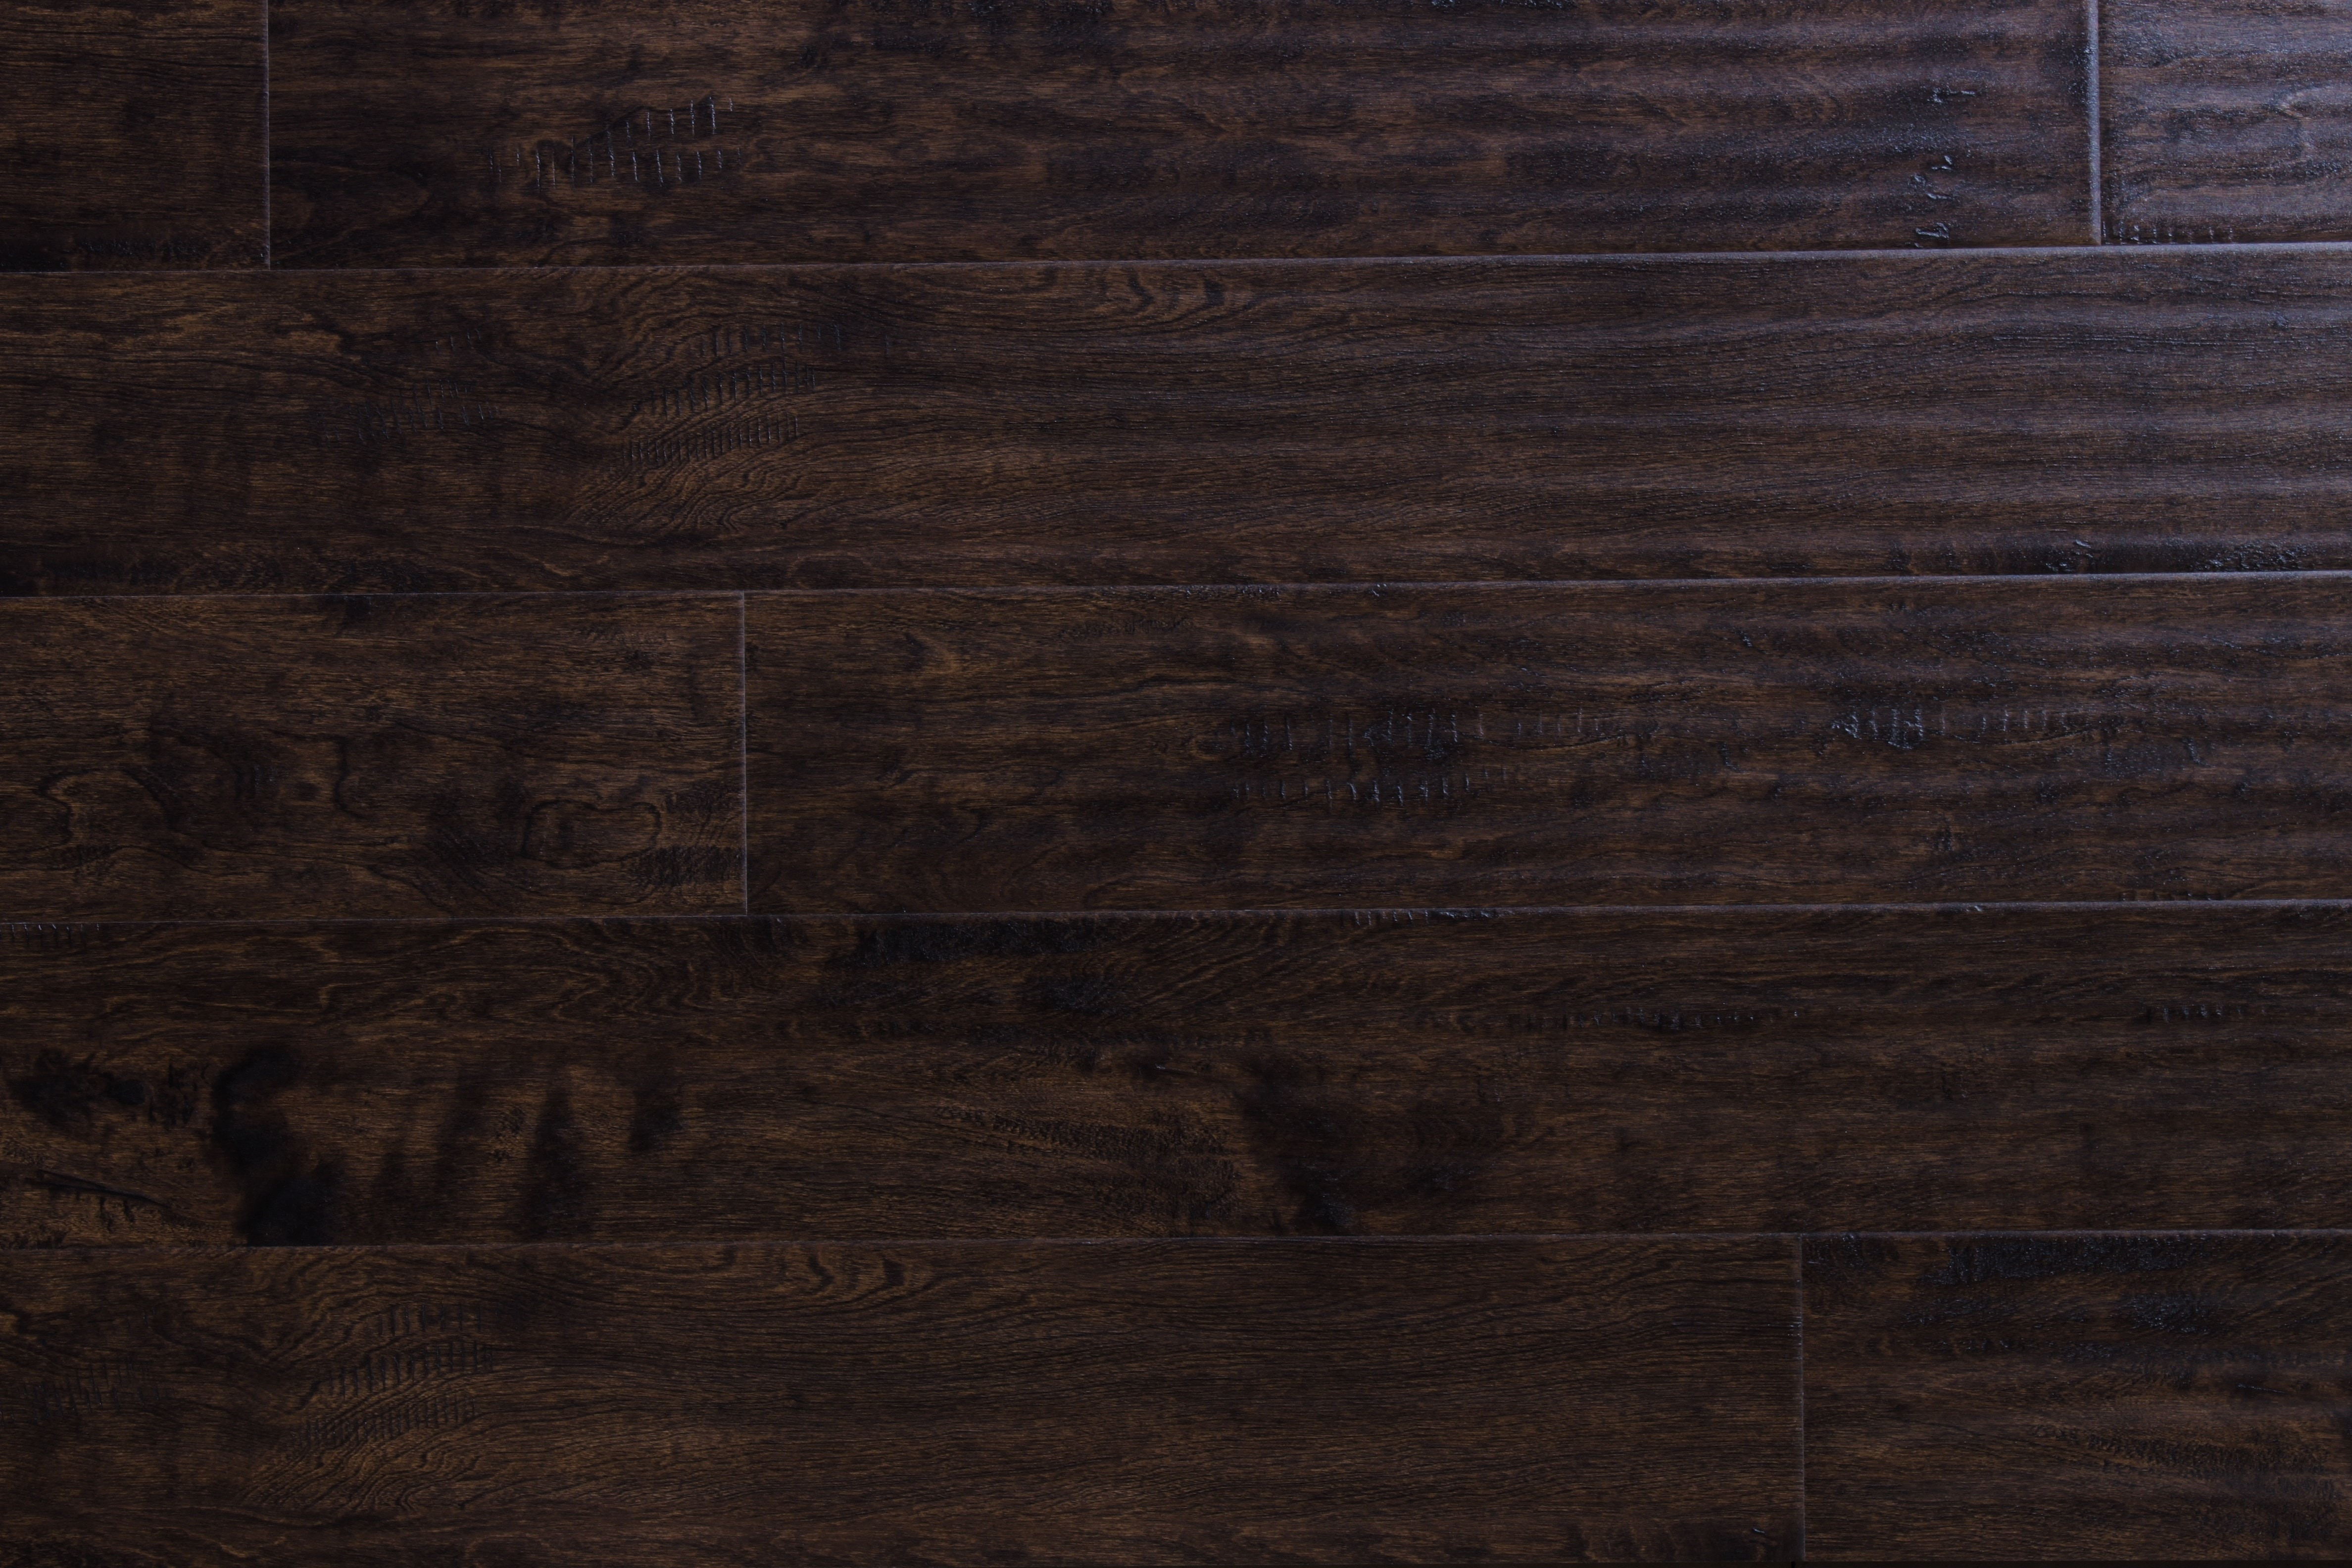 5 8 hardwood flooring of wood flooring free samples available at builddirecta pertaining to tailor multi gb 5874277bb8d3c